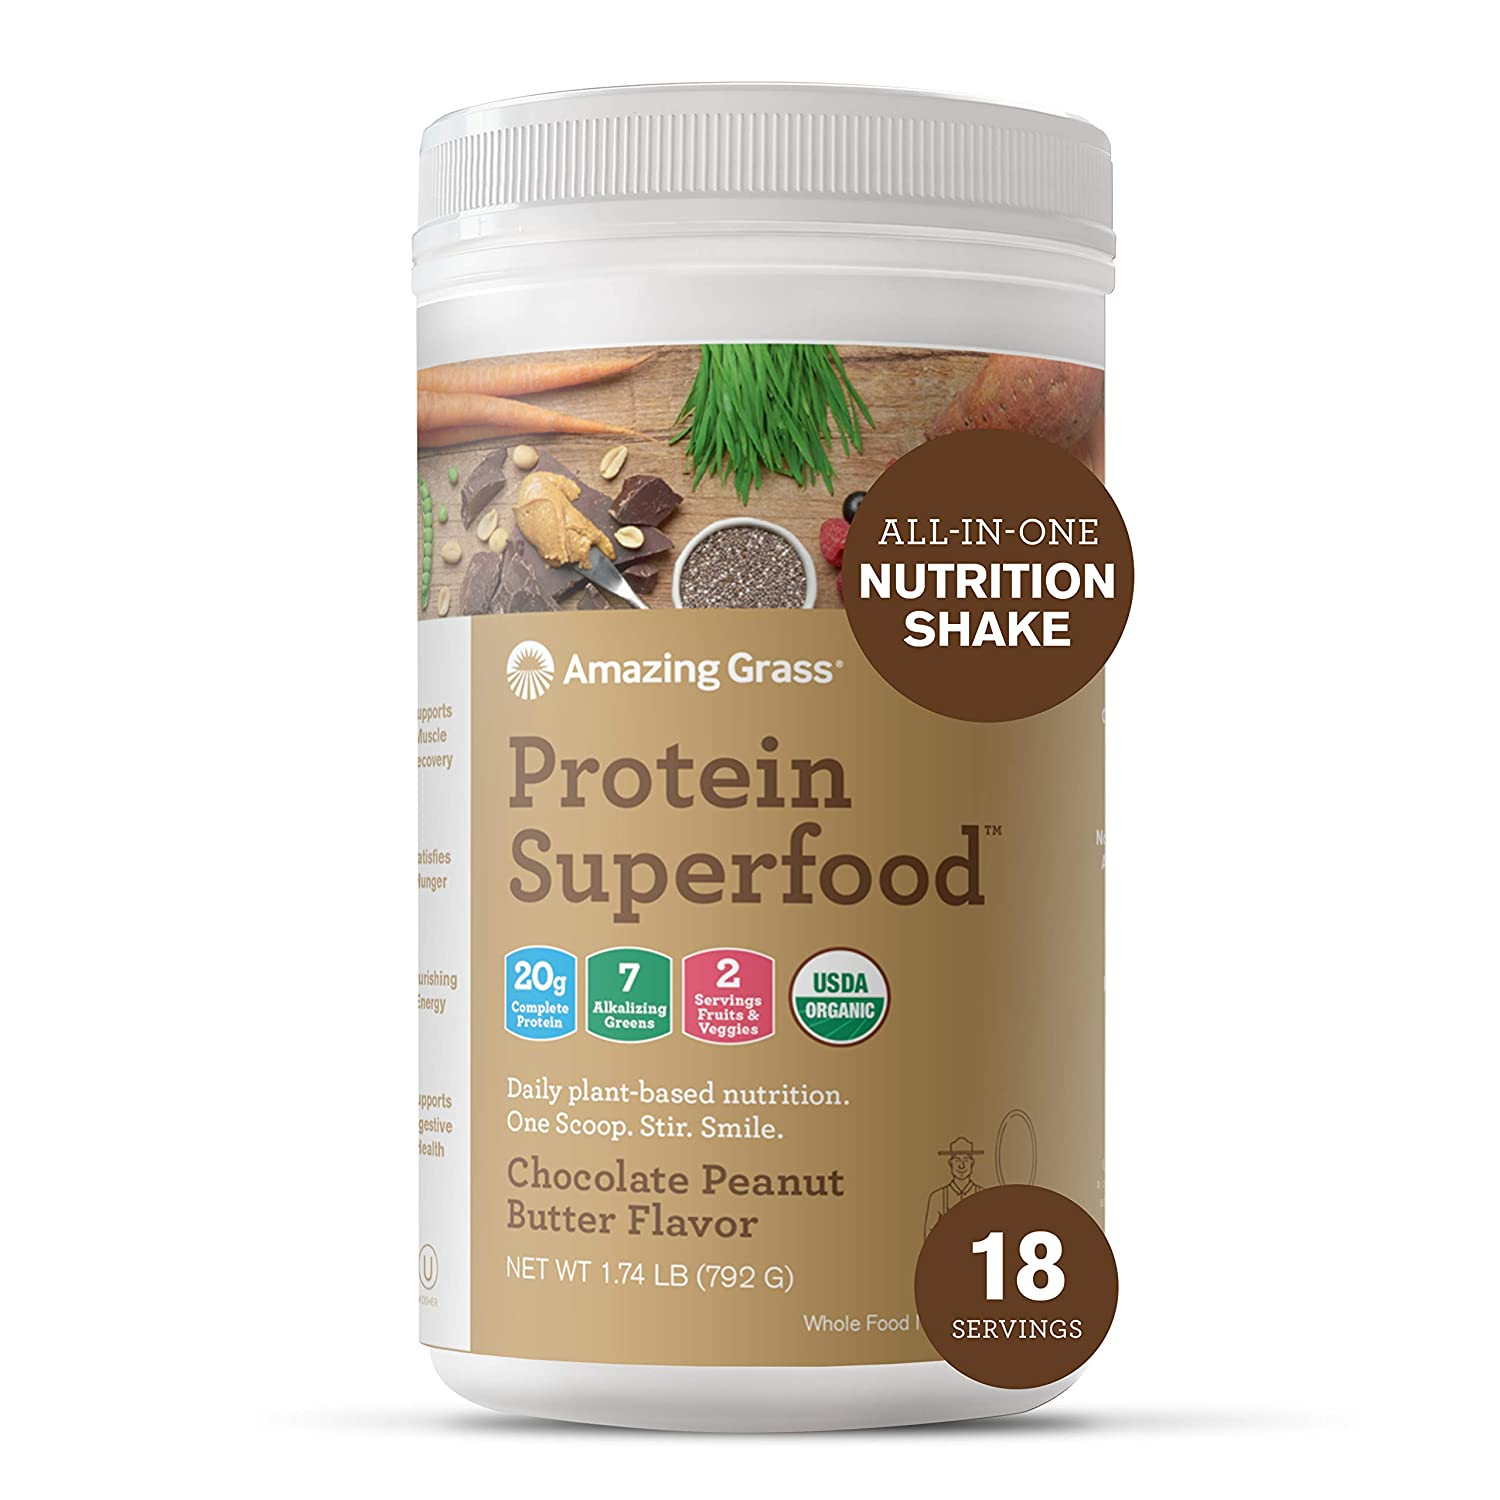 Amazing Grass Protein Superfood: Vegan Protein Powder, All-in-One Nutrition Shake, Chocolate Peanut Butter, 18 Servings : Grocery & Gourmet Food